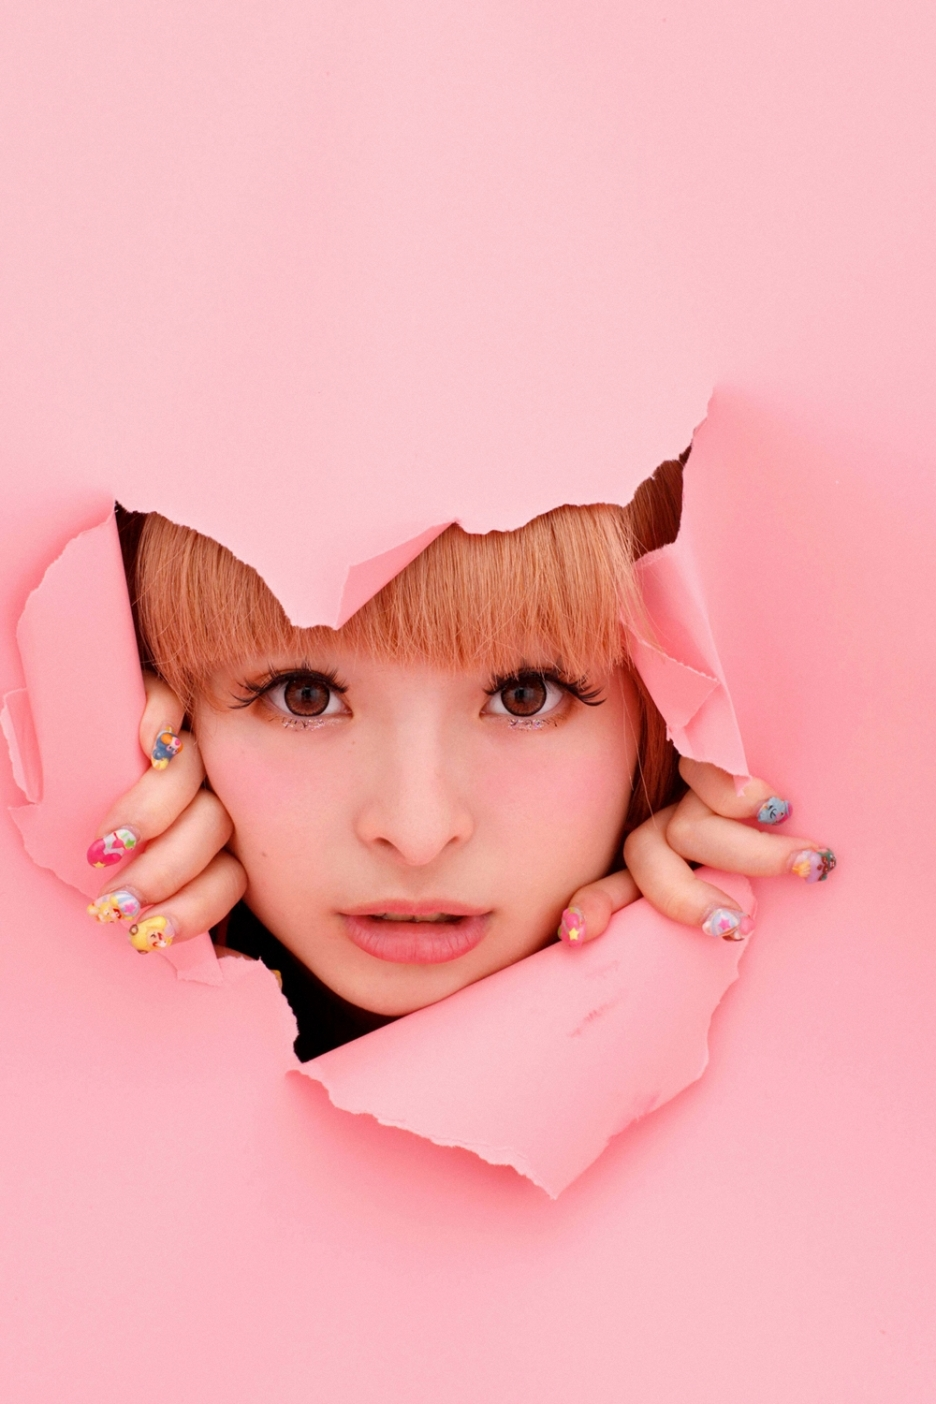 "the life and music career of kyary pamyu pamyu ""is she even real"" i hear one girl whisper, peering closely at a life-size poster of kyary pamyu pamyu true: in a scarlet bloom of a dress, its petals unfurling over a pink tutu, the japanese pop star's wide eyes and pin-straight hair conjure images of porcelain dolls and anime girls come alive yet, winding."